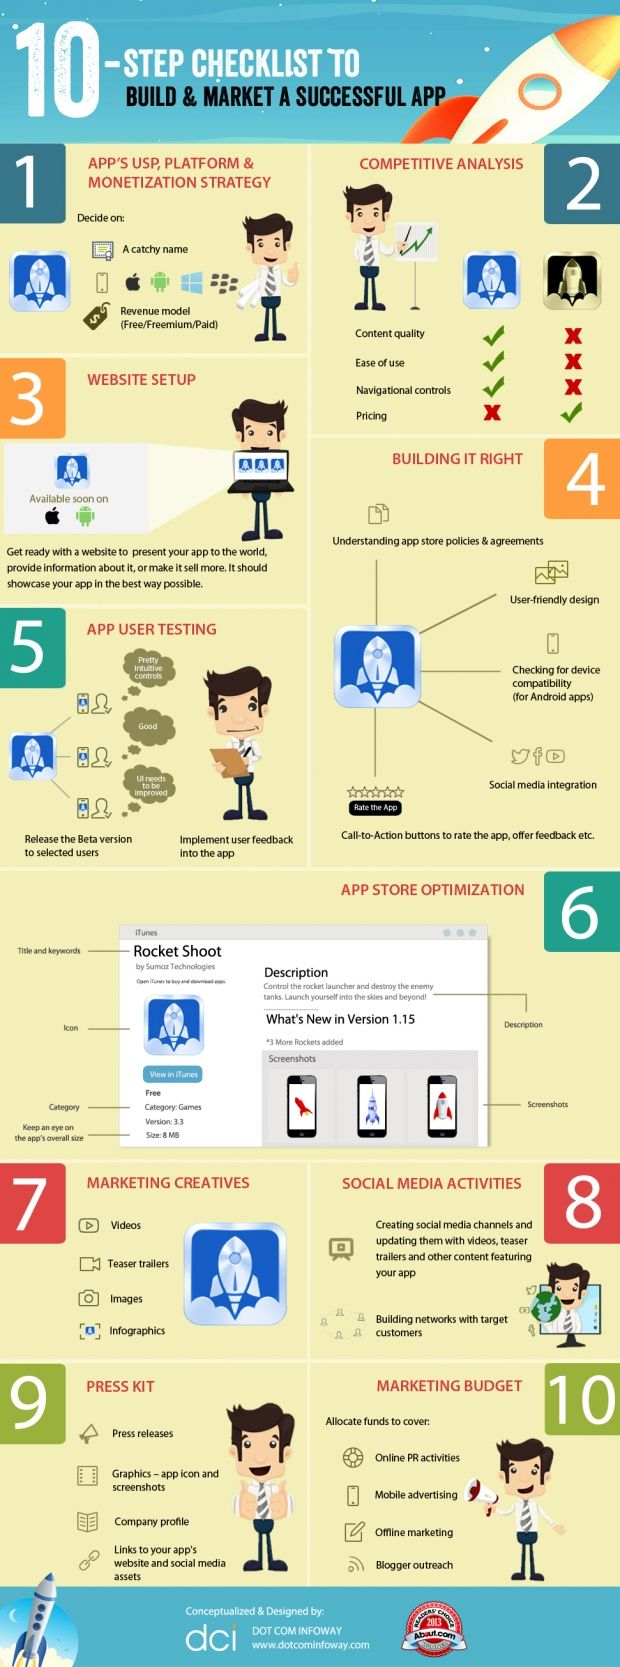 The app development business is very competitive these days. If you are planning to develop a new app, you should take time to choose the right strategy, develop quality app, and market it like a pro. This infographic shows you some of the steps you should take to promote your app: [Source]